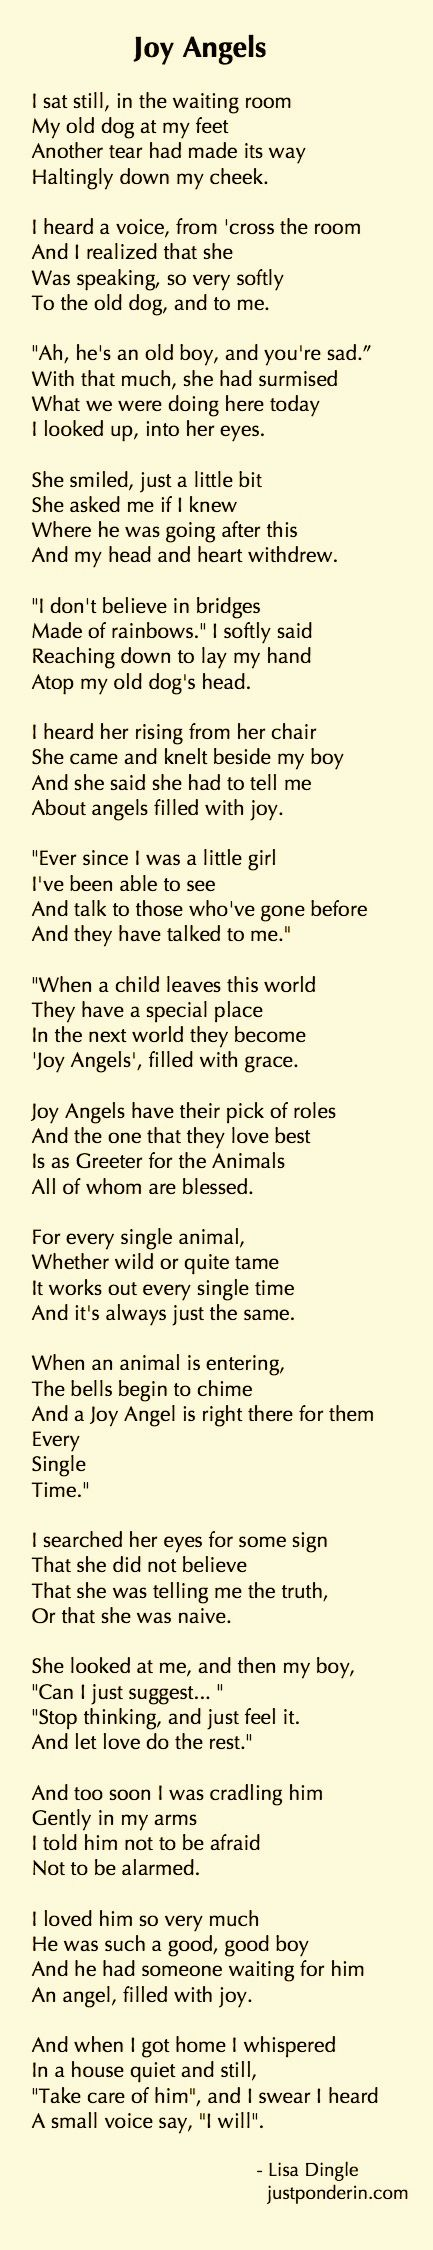 I guess you'd need to lose an animal to appreciate this...I do.  (Original message with this post: Joy Angels by Lisa Dingle (the mother of one of my best friends!) Extremely touching read for anyone who has ever lost a loved animal.)